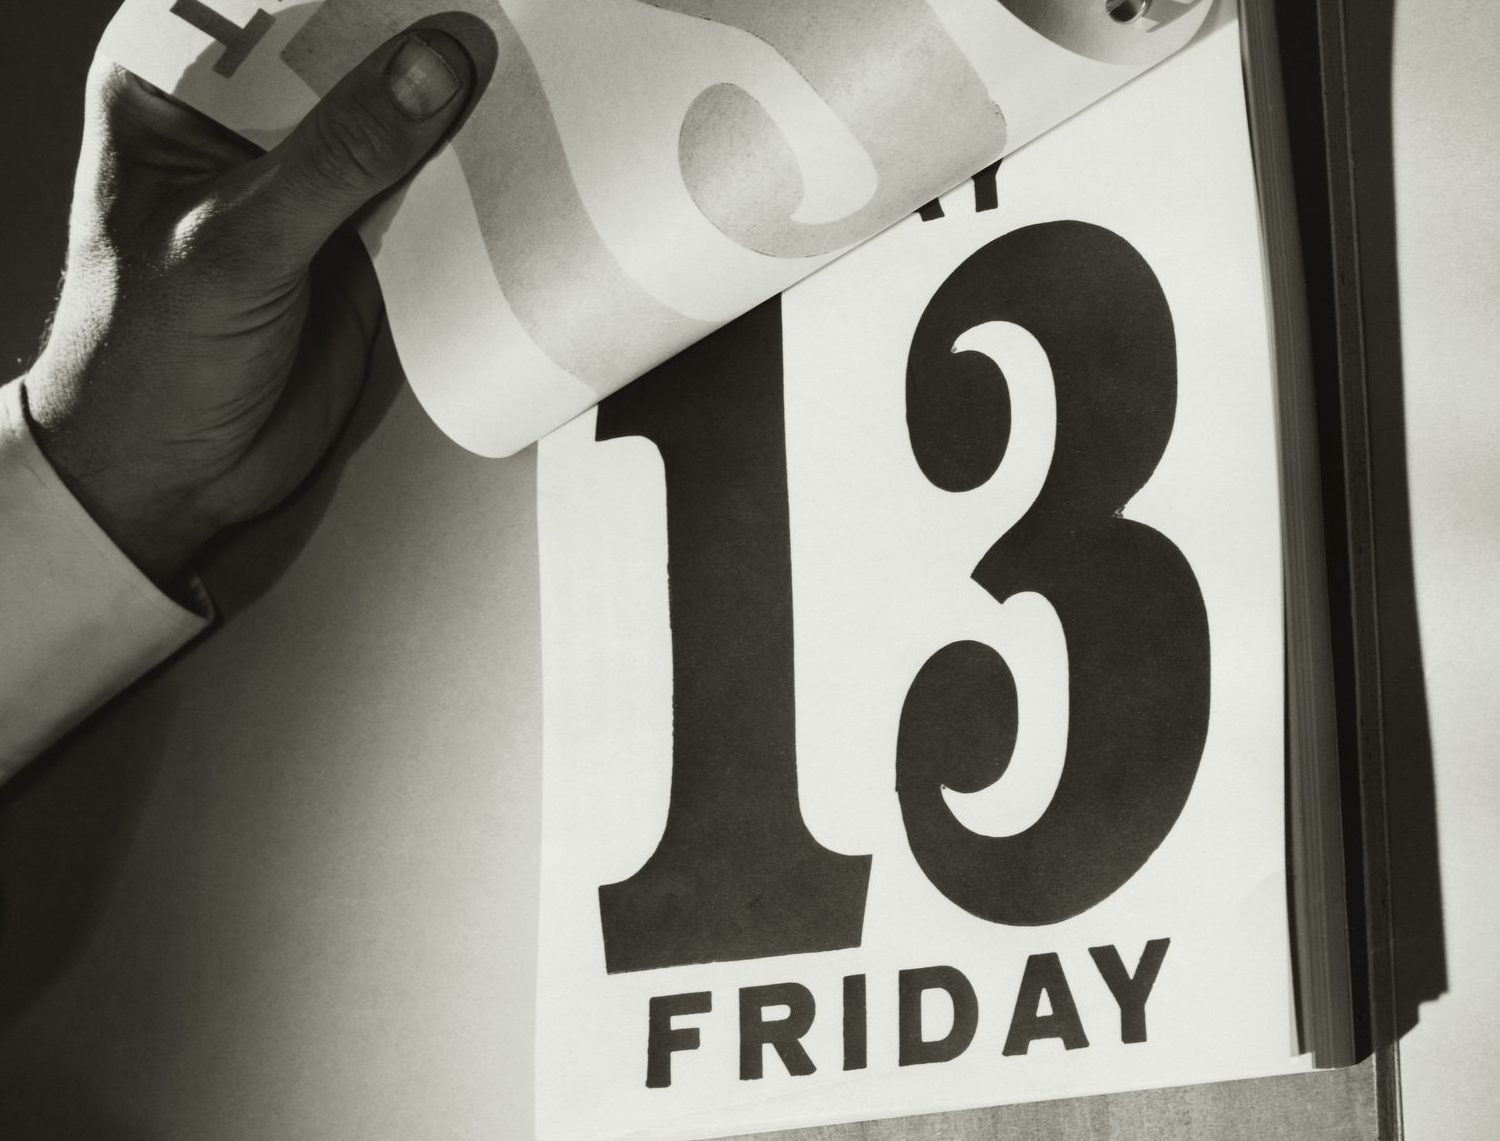 Friday 13th quotes, stories and memes for the unluckiest day of the year